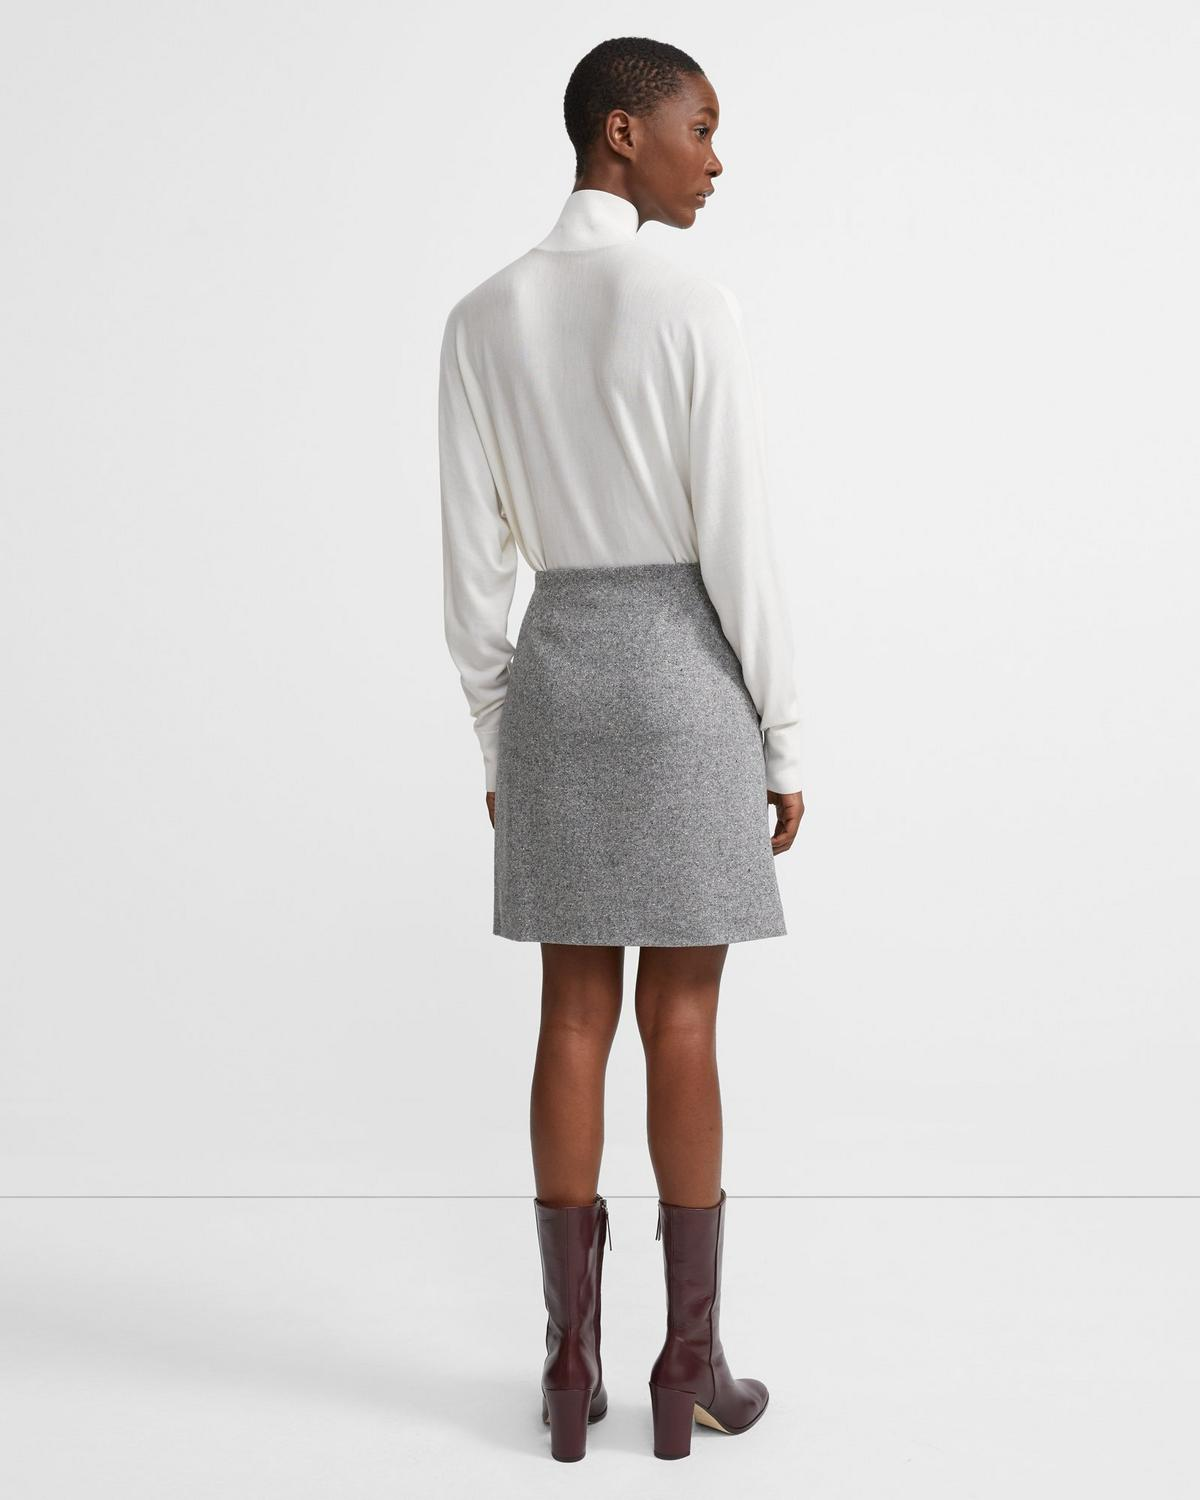 Easy Waist Skirt in Speckled Wool